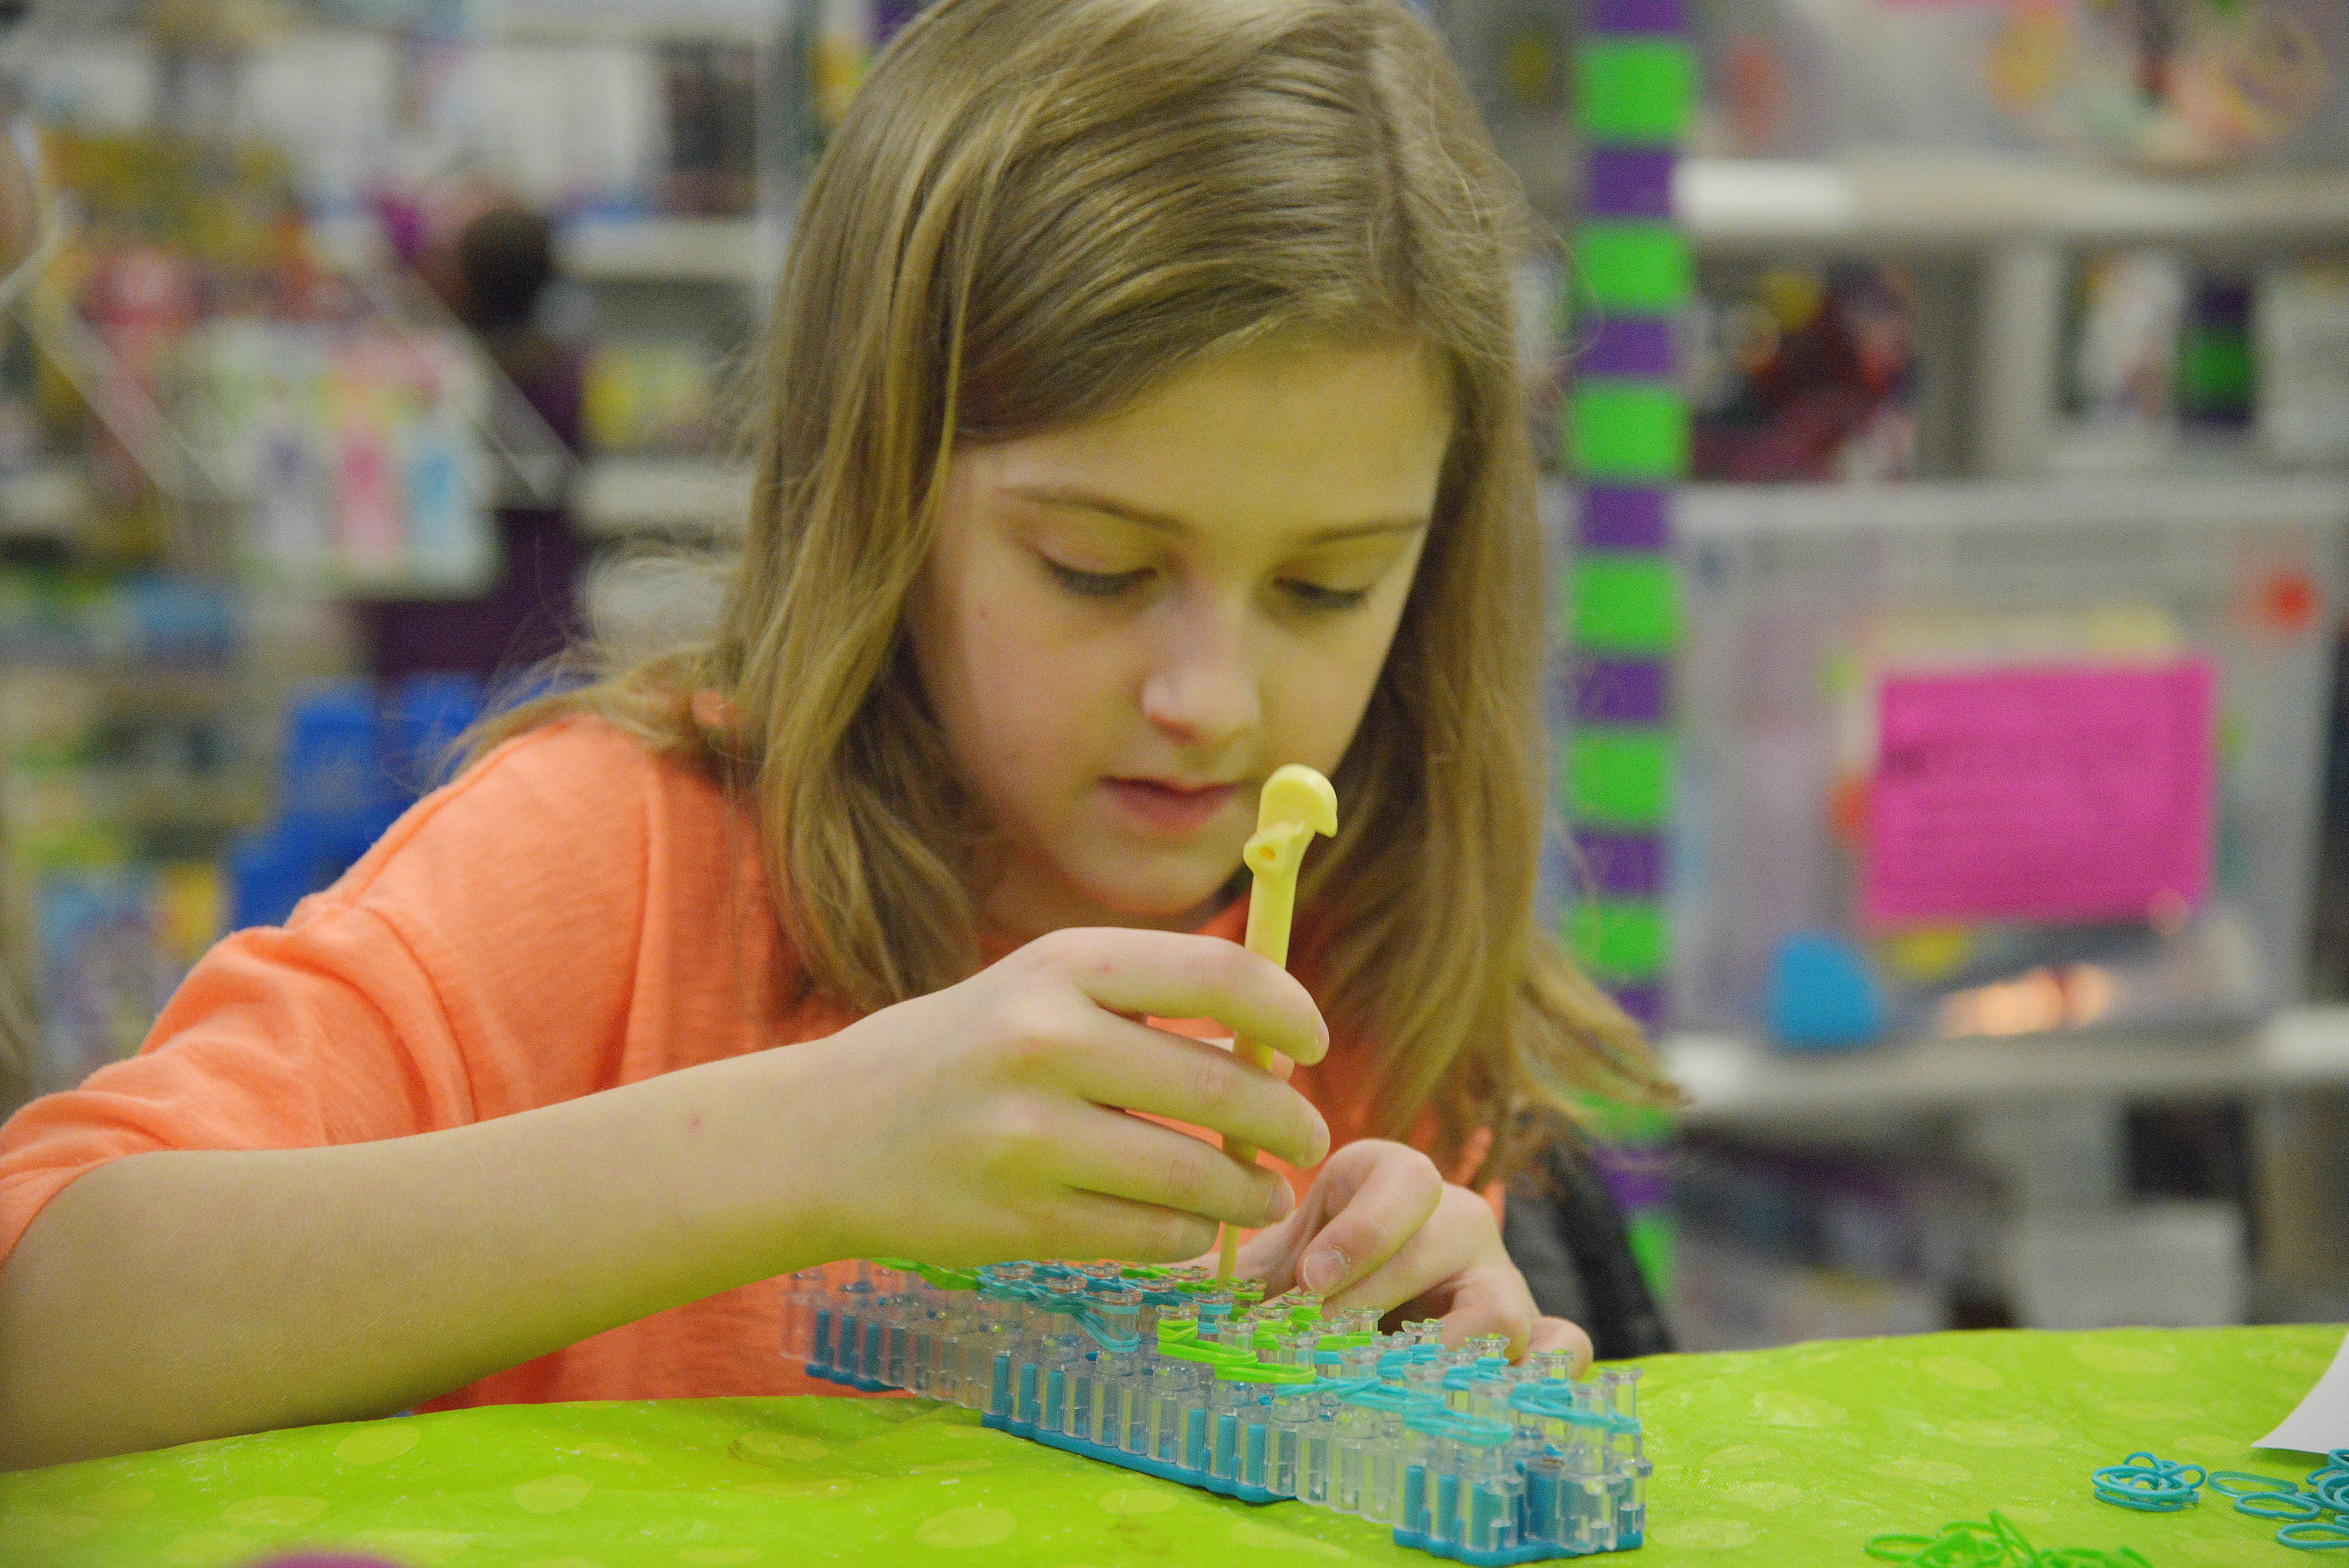 Using a hook to wrap a small rubber band around a peg on her Rainbow Loom kit, Kaeli Wloch, 10, of Romeoville, makes a colorful monkey at the Learning Express toy store in Naperville.